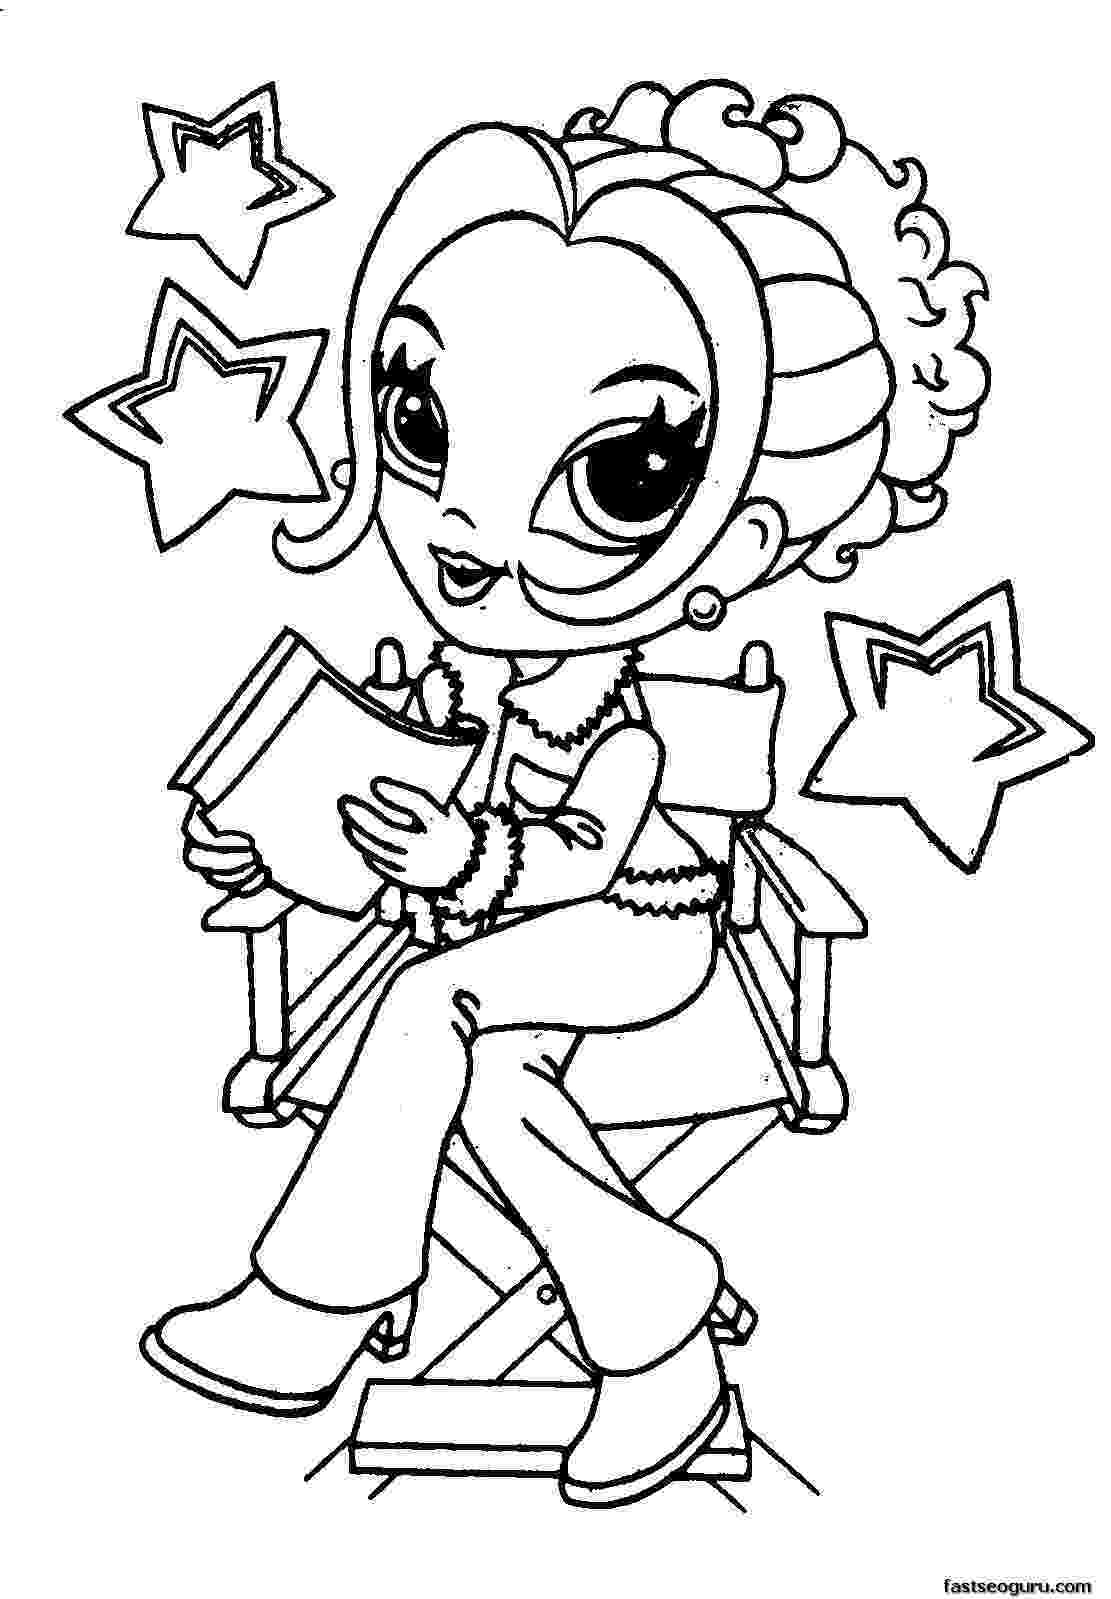 colouring pages to print for girls best free printable coloring pages for kids and teens to pages colouring for girls print